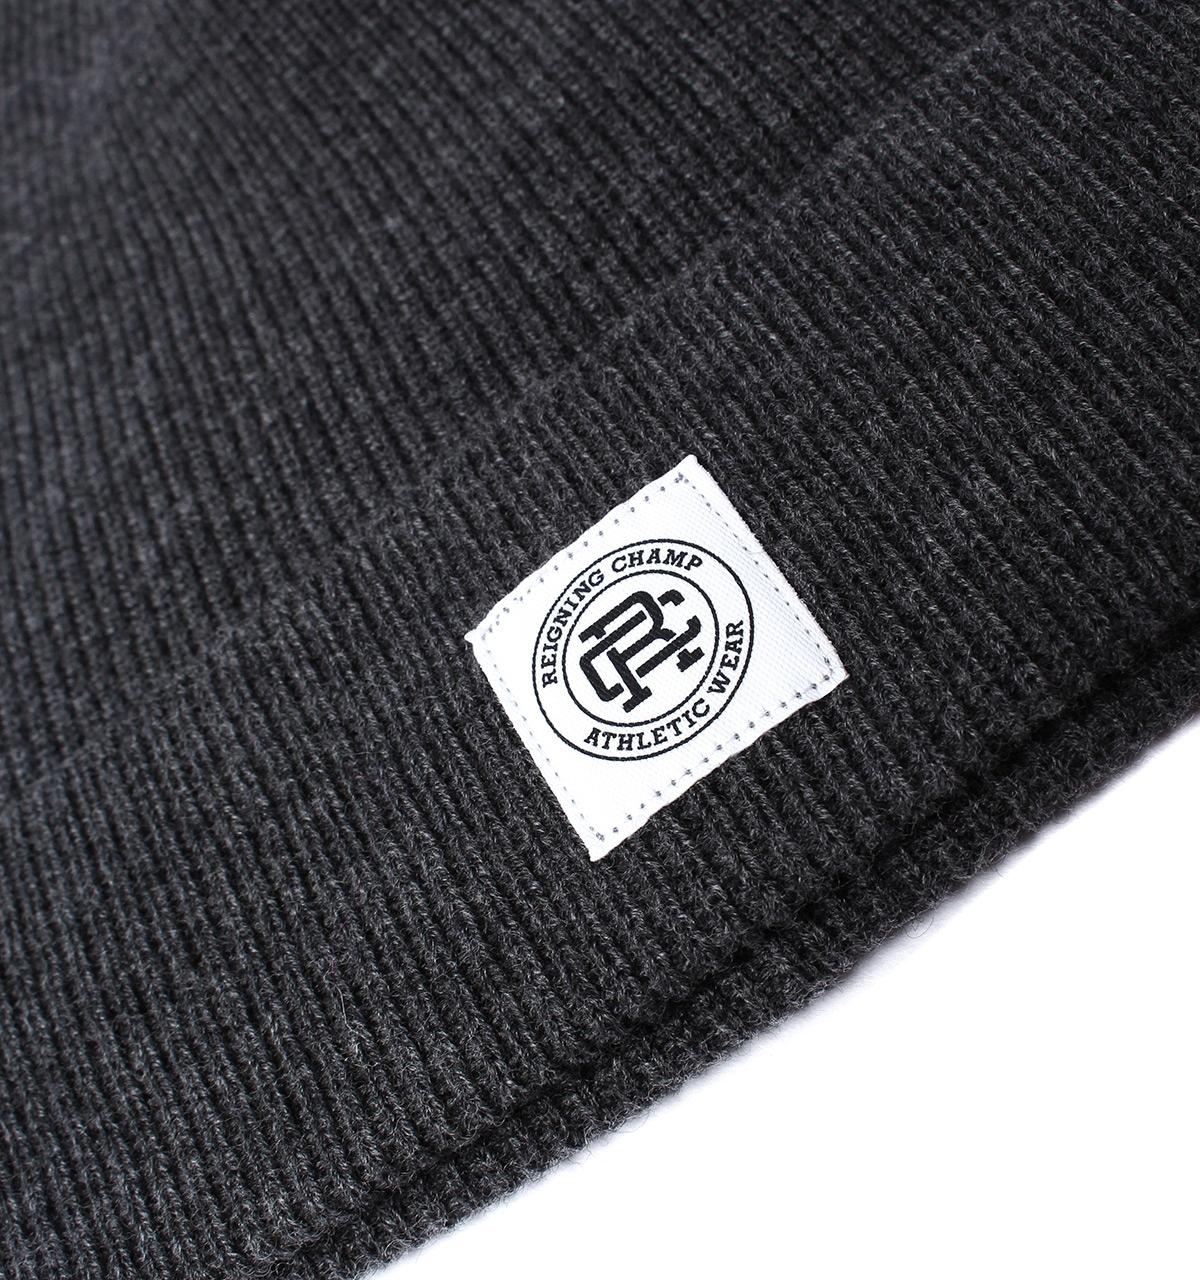 84c5b410215 Lyst - Reigning Champ Heather Charcoal Merino Wool Beanie in Gray ...